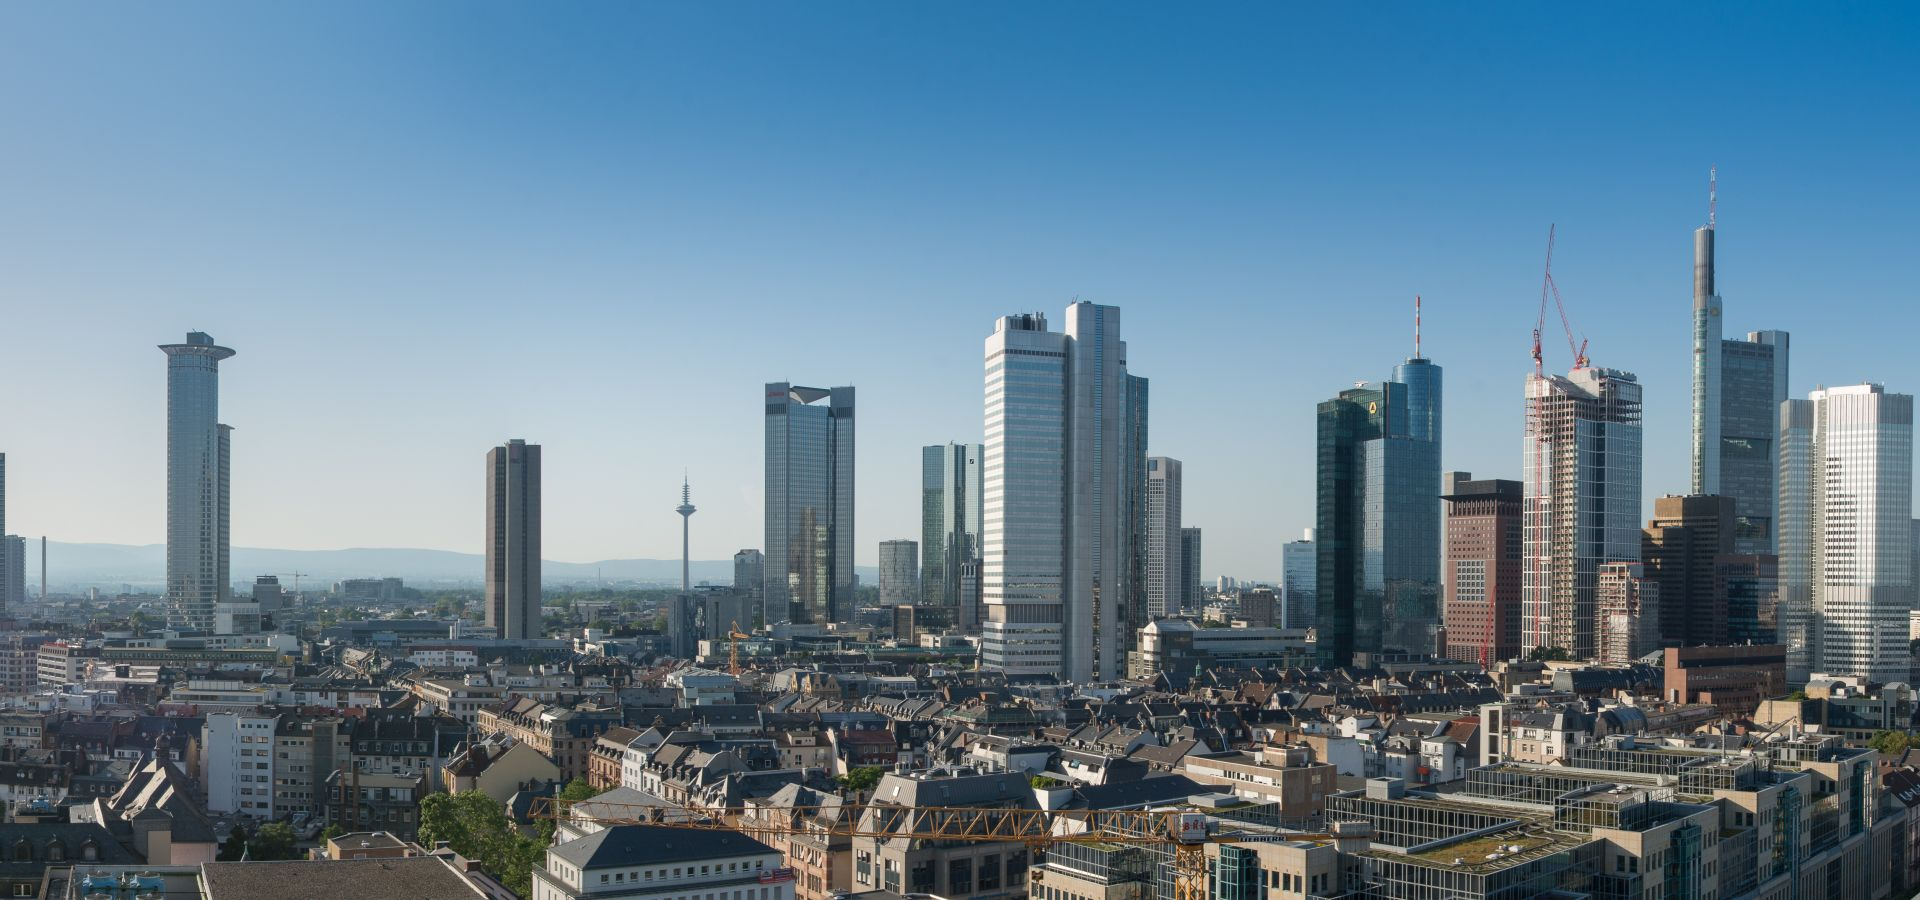 The skyline of Frankfurt am Main.